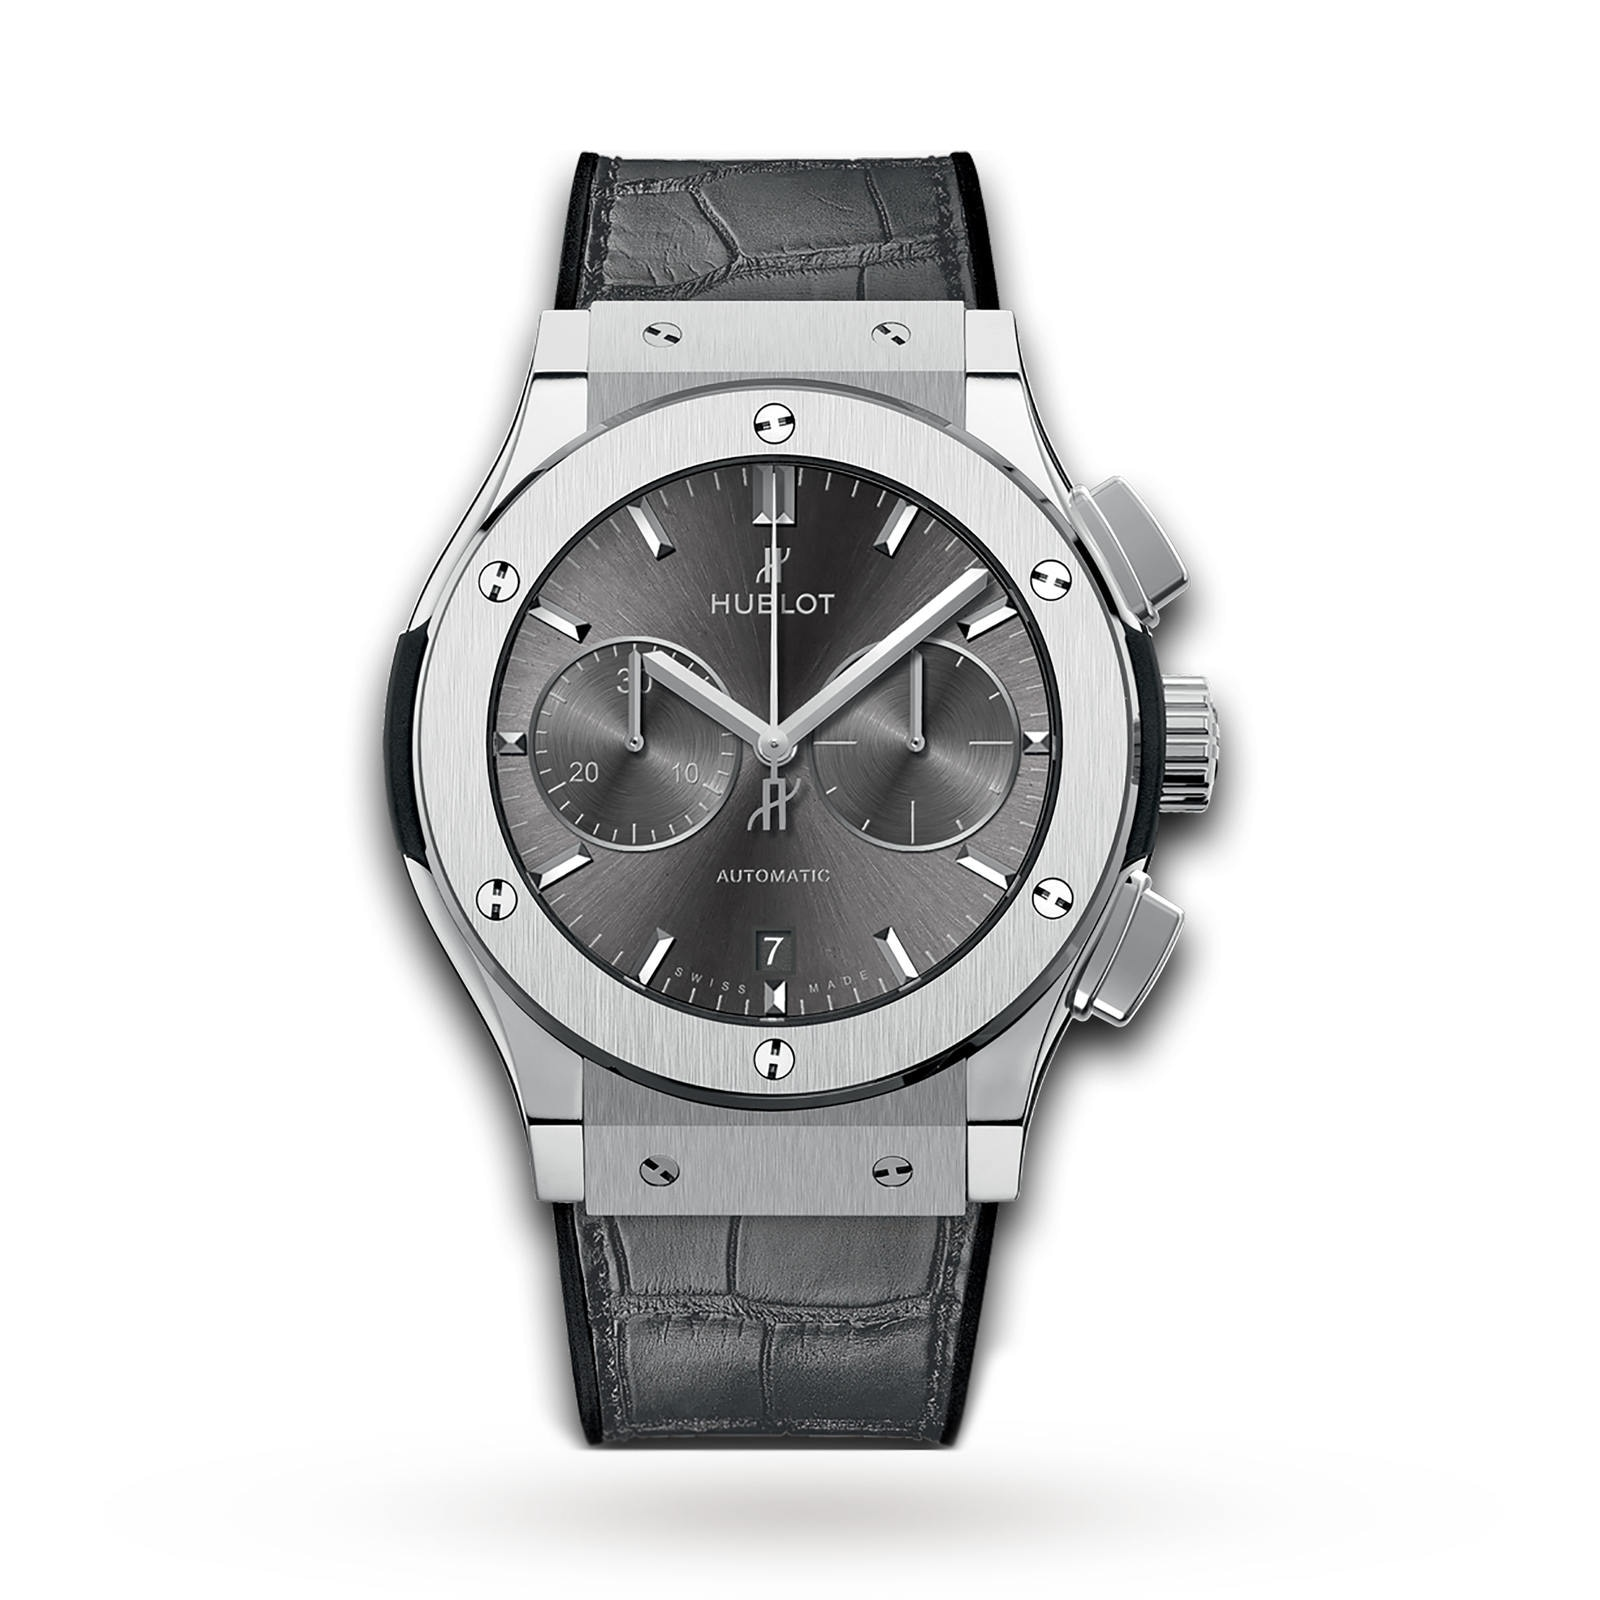 Hublot Hublot Classic Fusion Racing Grey Chronograph Titanium 45mm Mens Watch